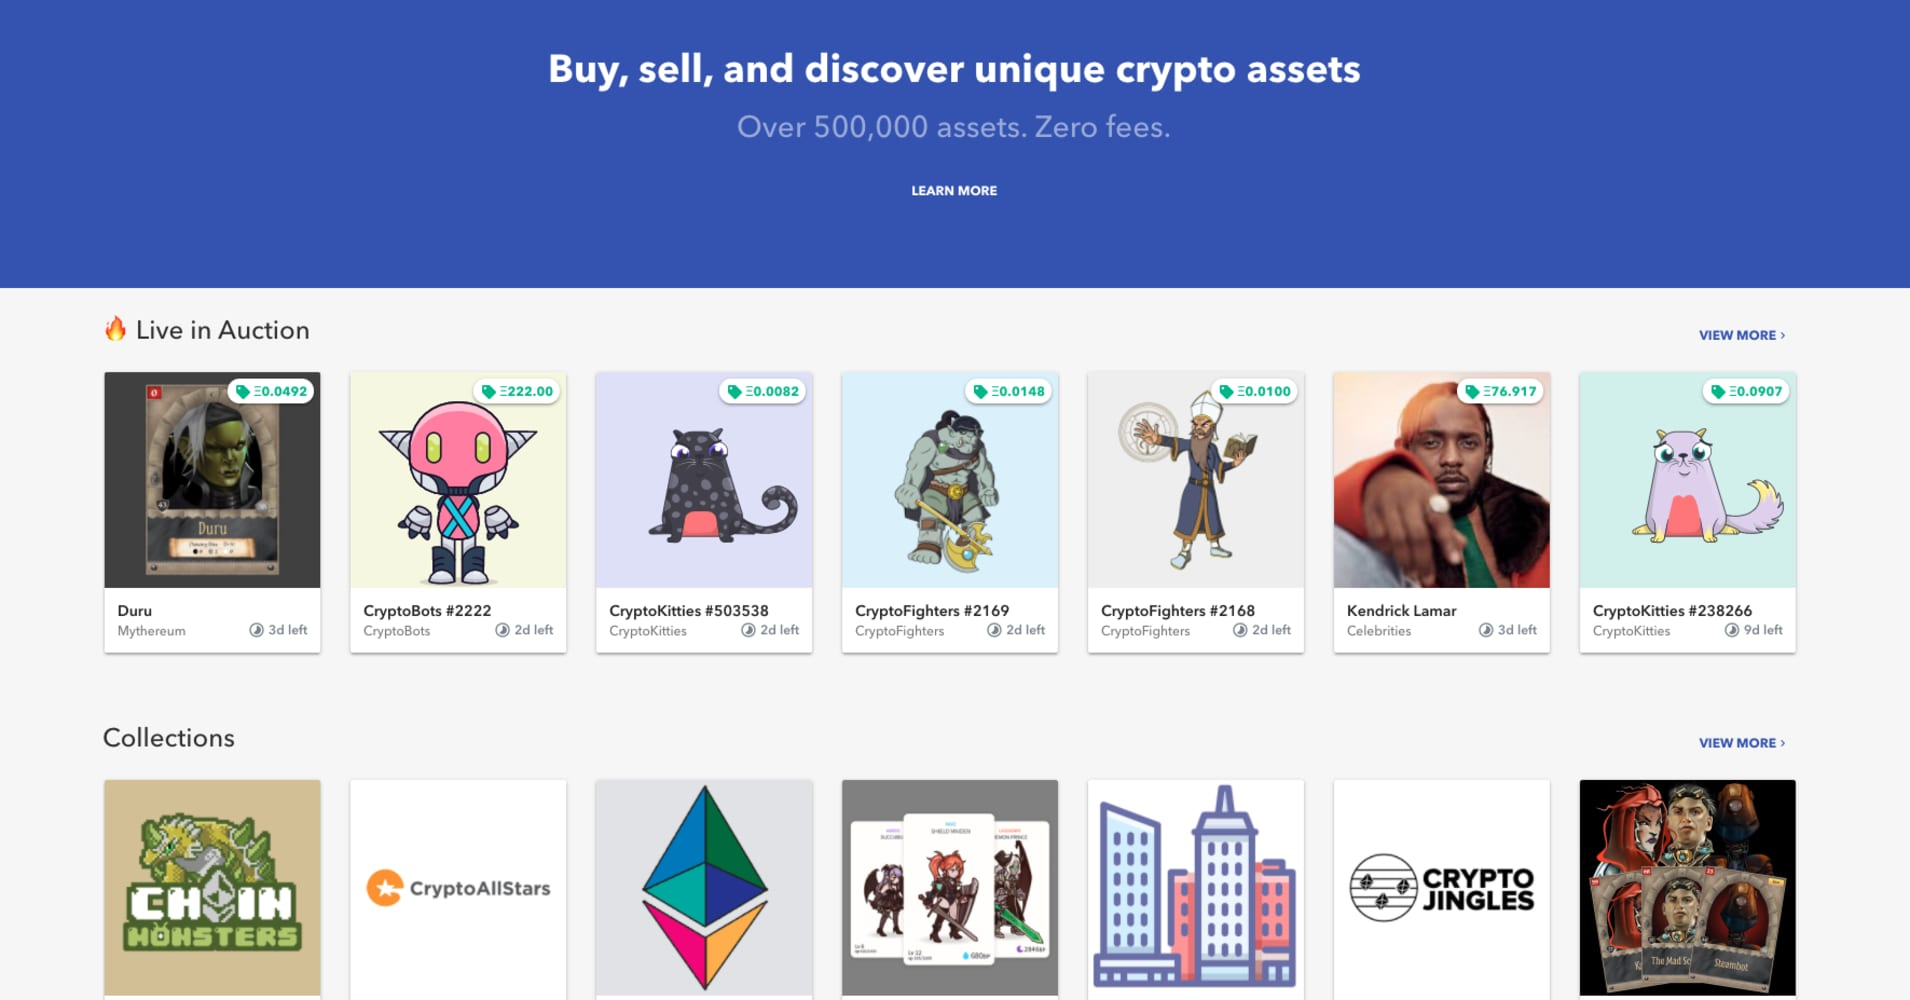 Rare Bits has raised $6 million on the way to becoming cryptocurrency's answer to eBay